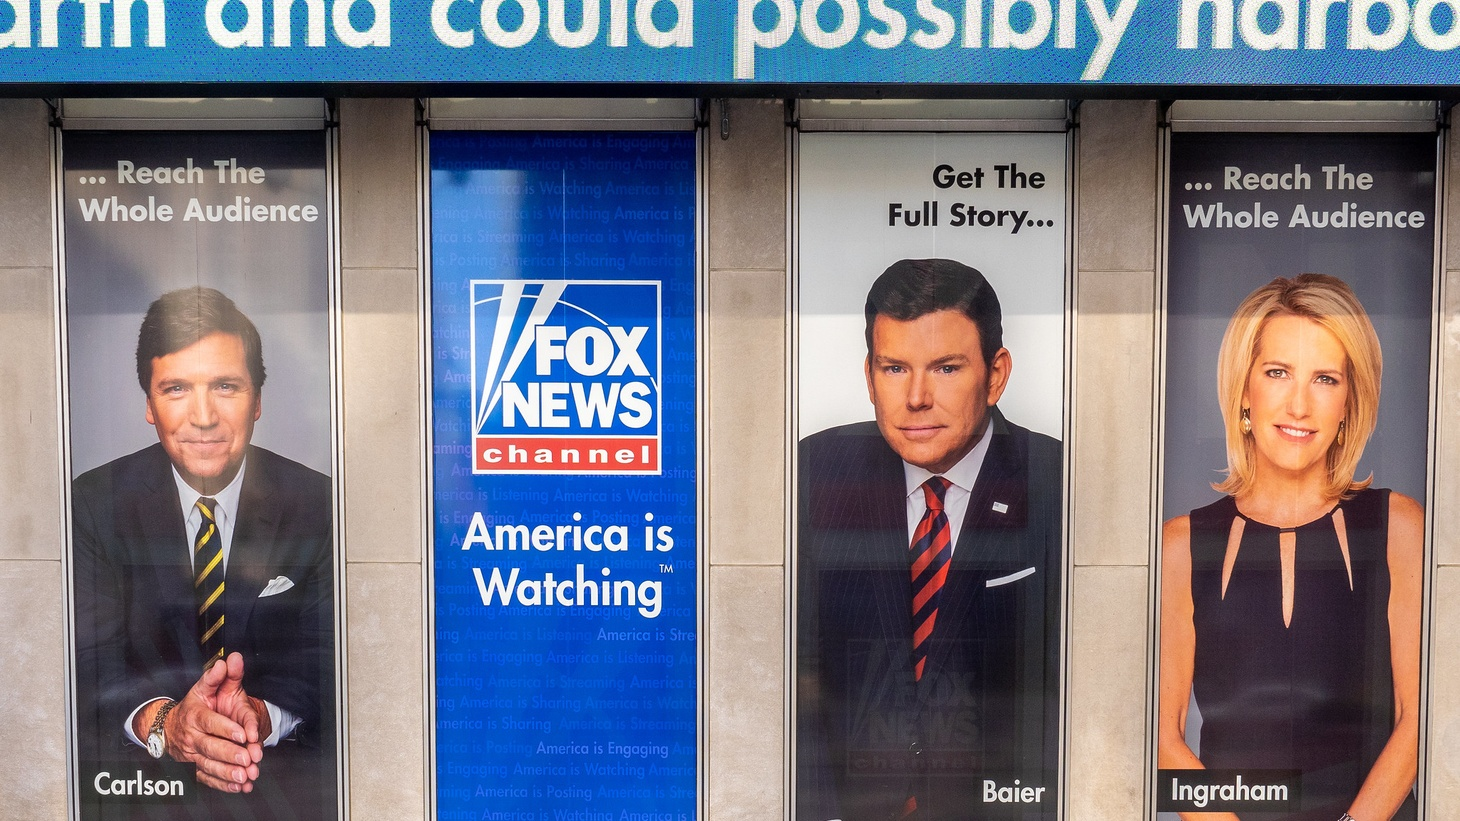 Fox News saw a dip in ratings after the first night of election results, coming in second to CNN.